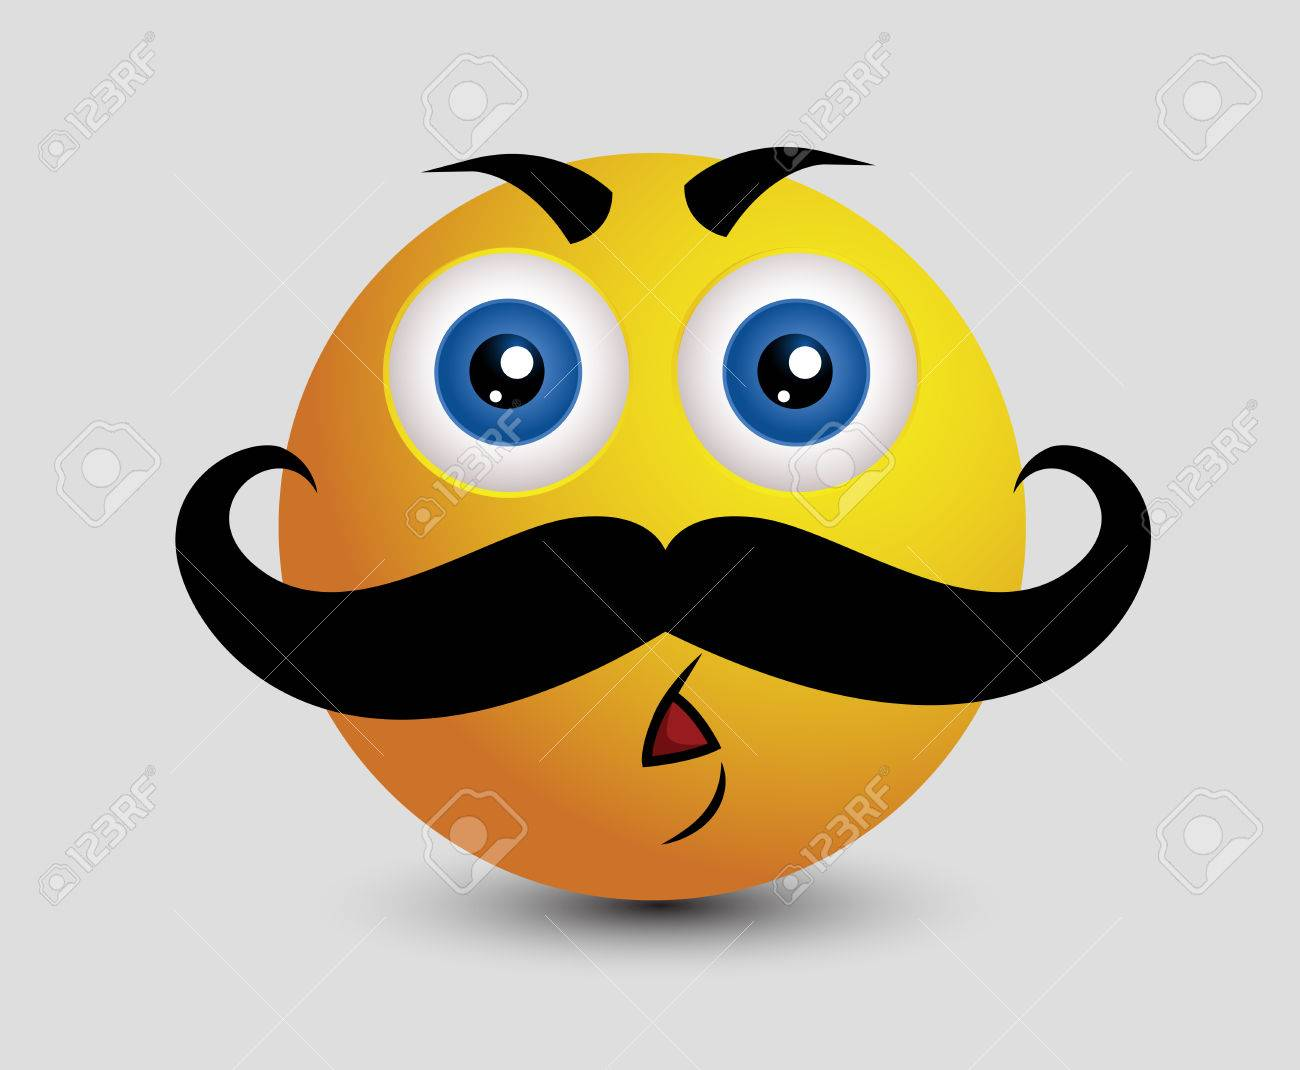 large mustache mature man emoji smiley emoticon stock vector 52150734